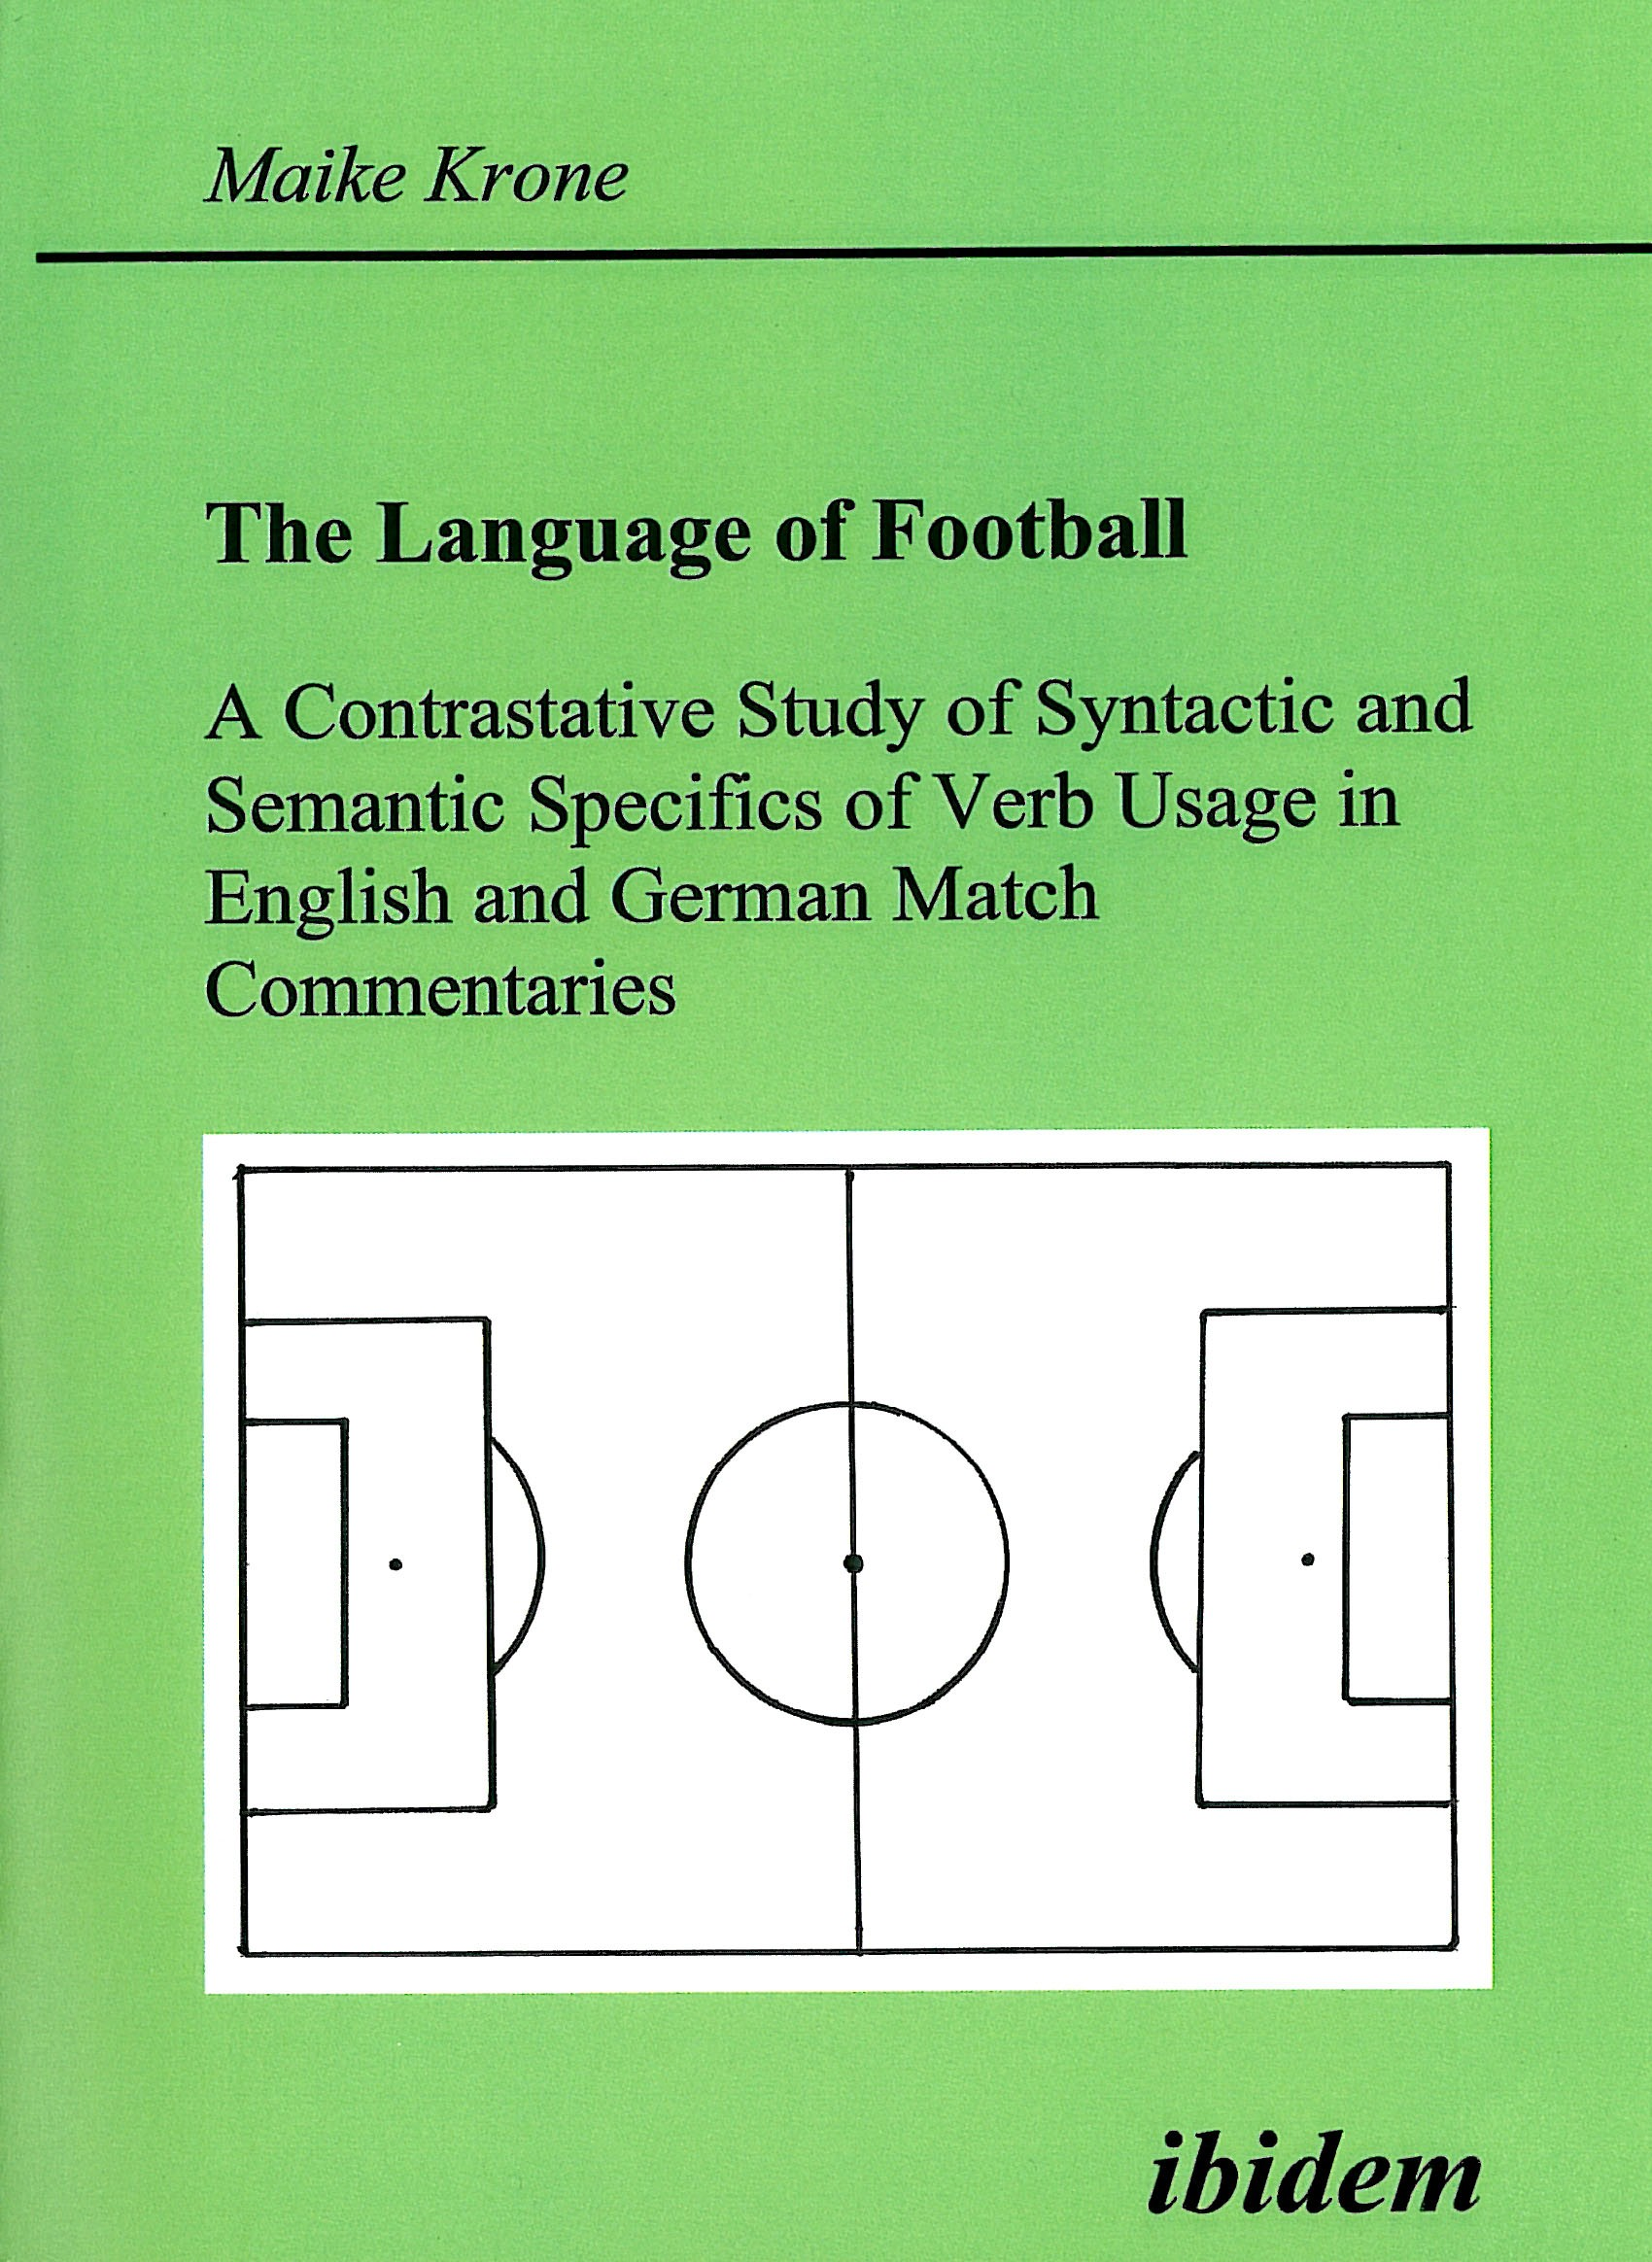 The Language of Football